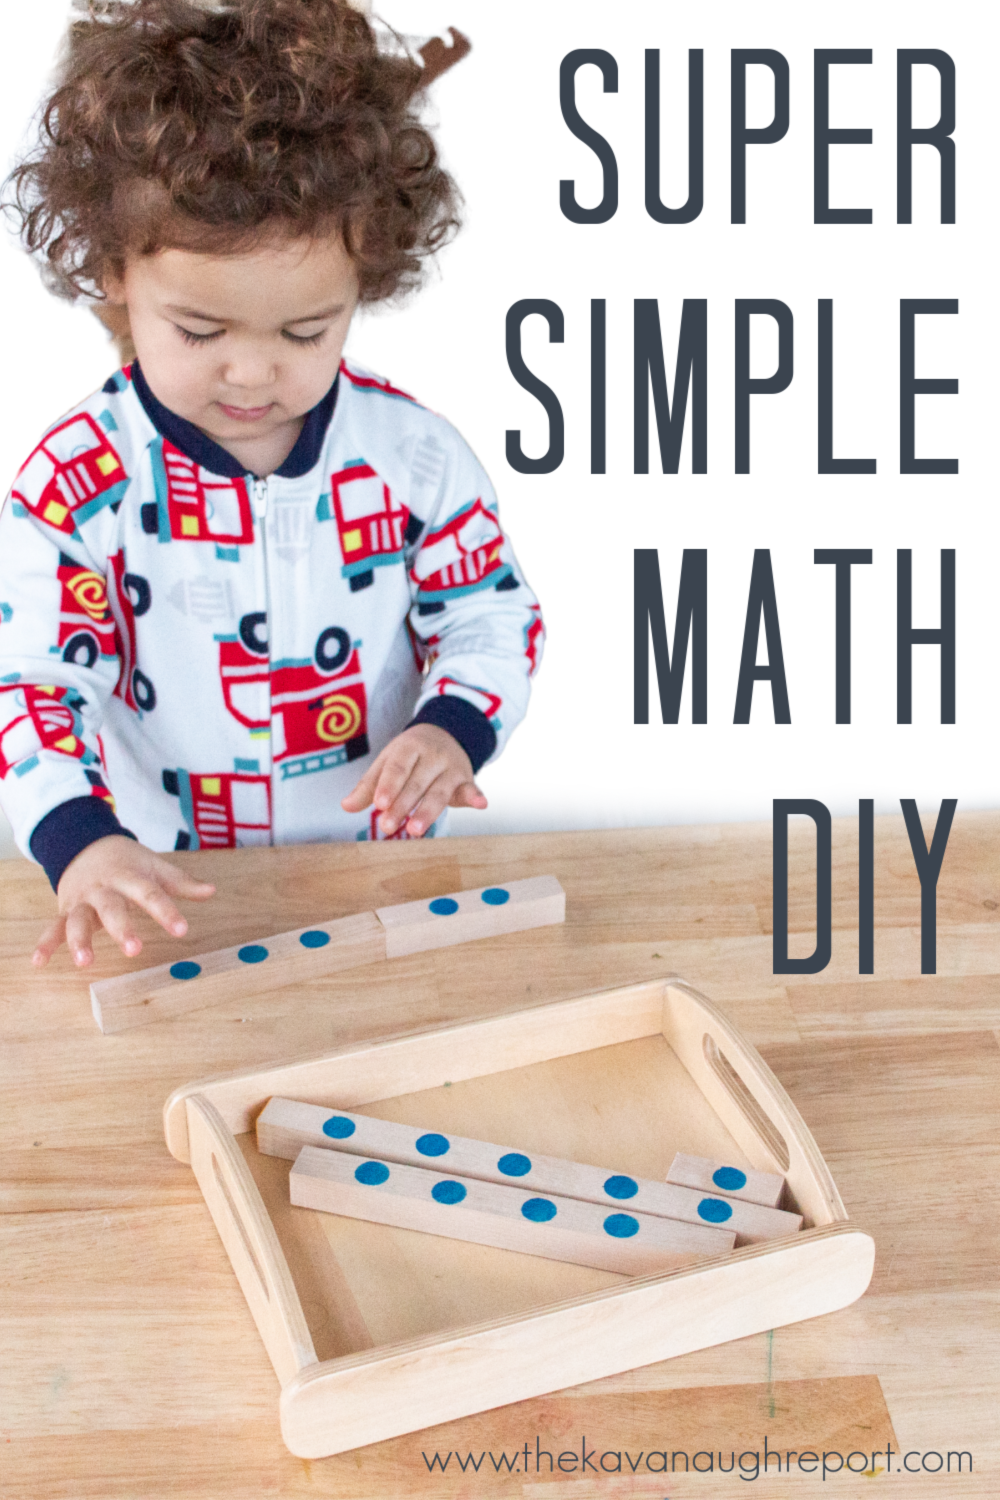 This Montessori inspired DIY activity is perfect to introduce math concepts to 3-year-olds. This simple toy is perfect for your Montessori shelves and a great way to get started with Montessori math at home.